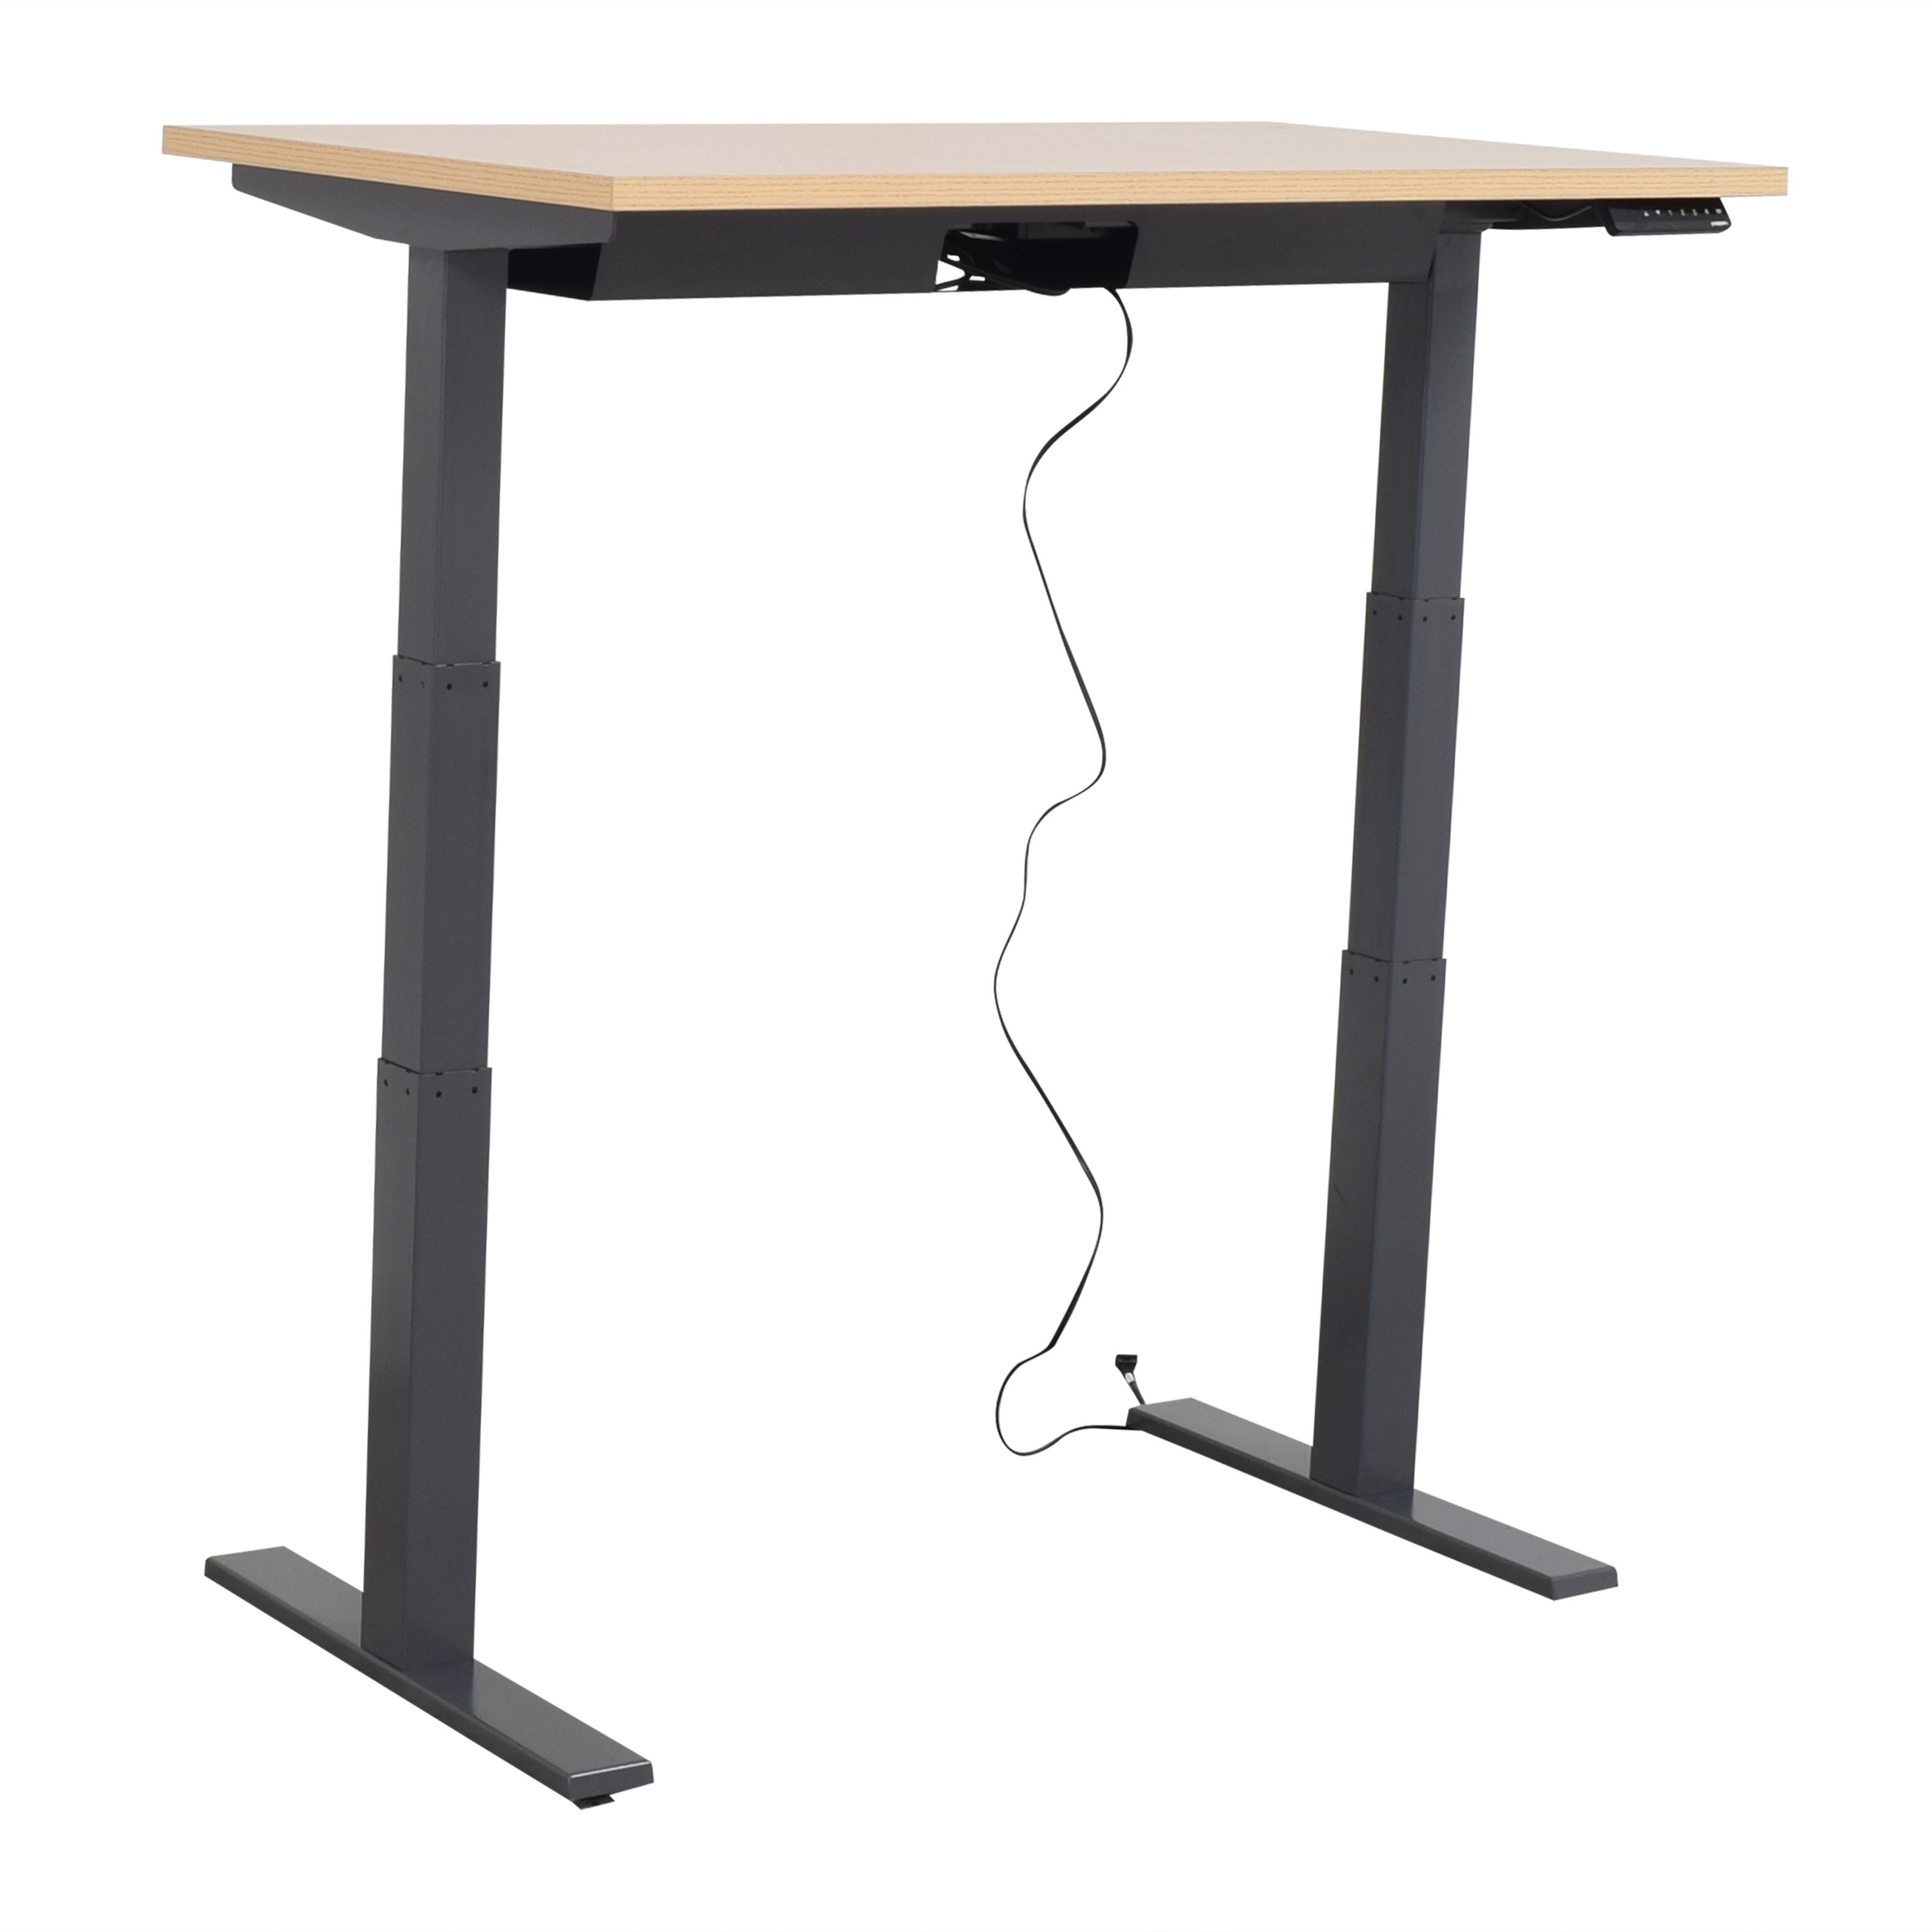 Poppin Poppin Series L Adjustable Height Desk for sale